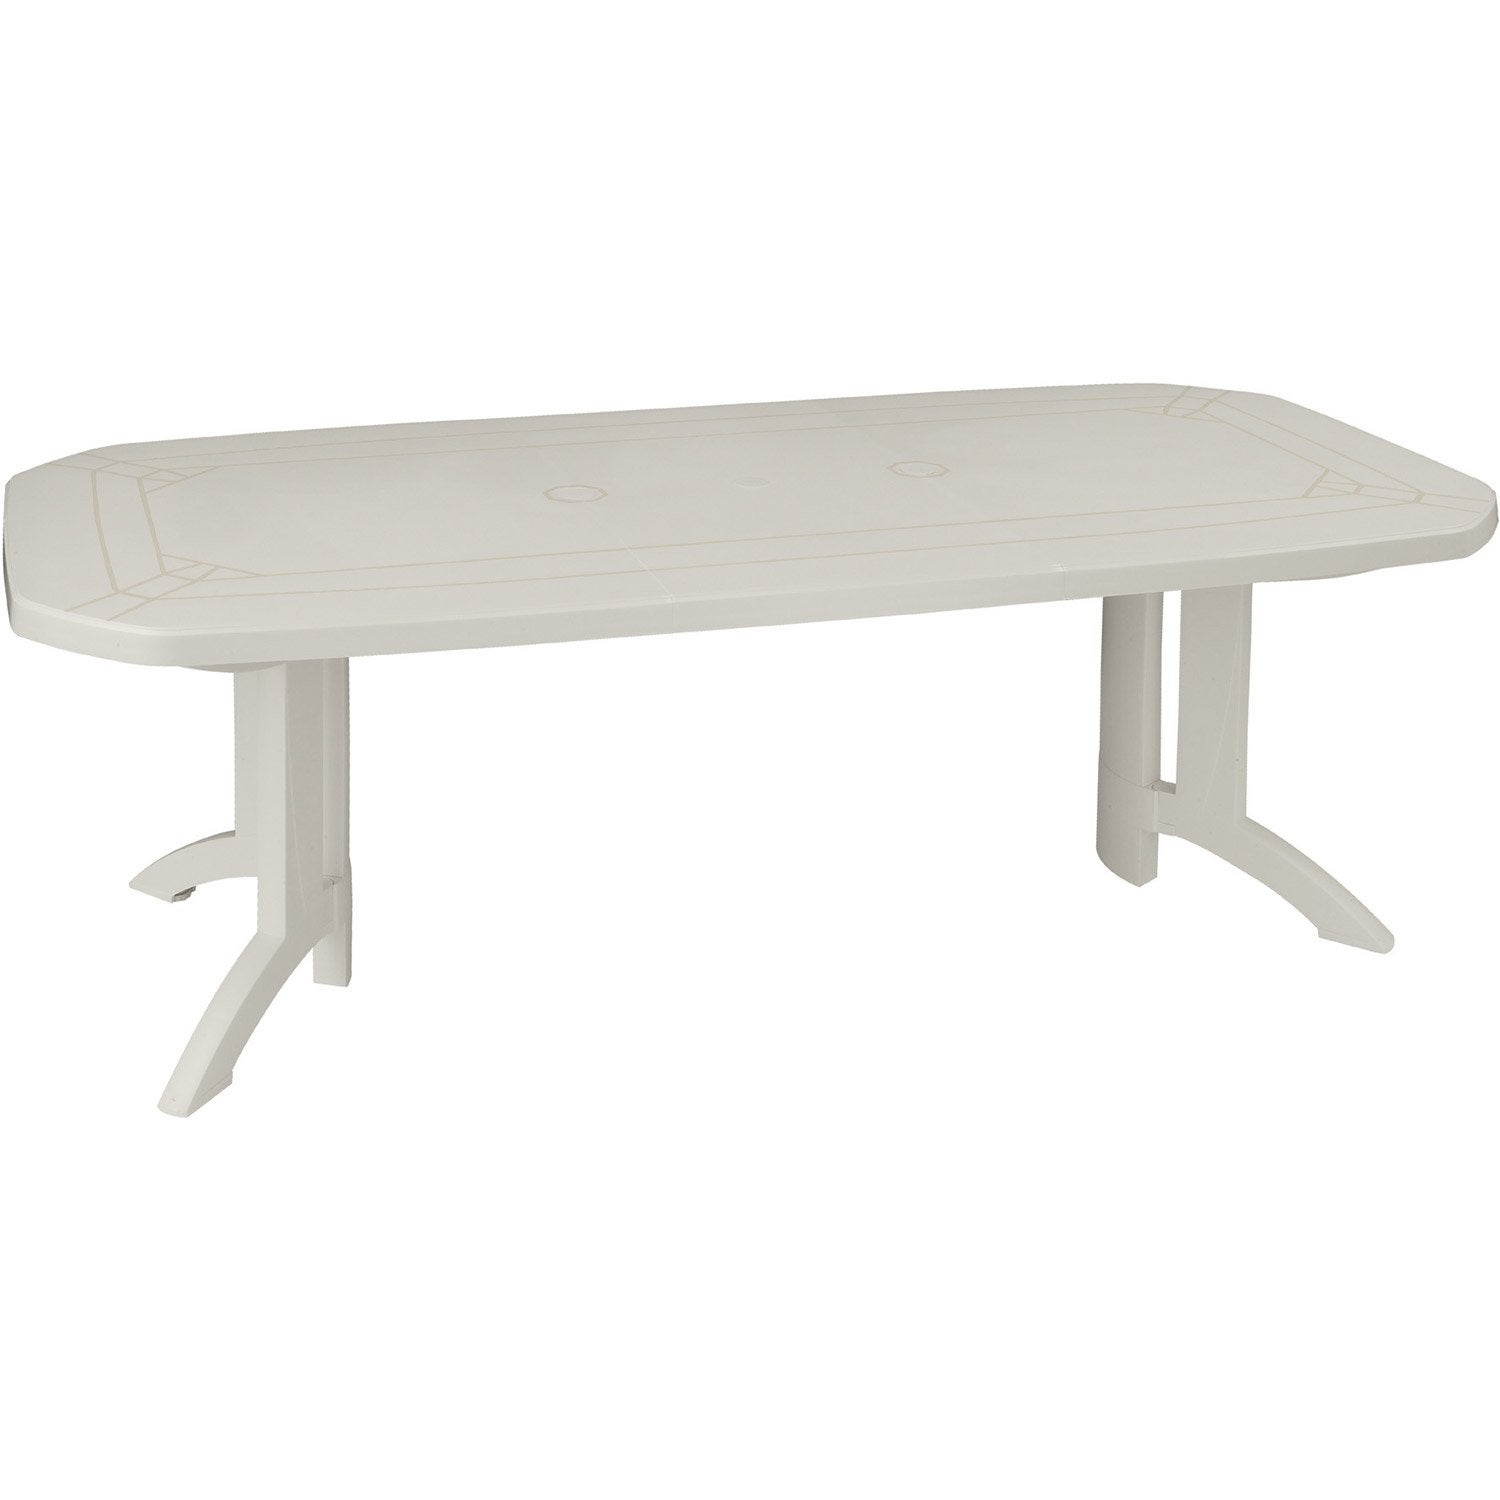 Table de jardin grosfillex v ga rectangulaire blanc 10 for Table de cuisine pliante leroy merlin